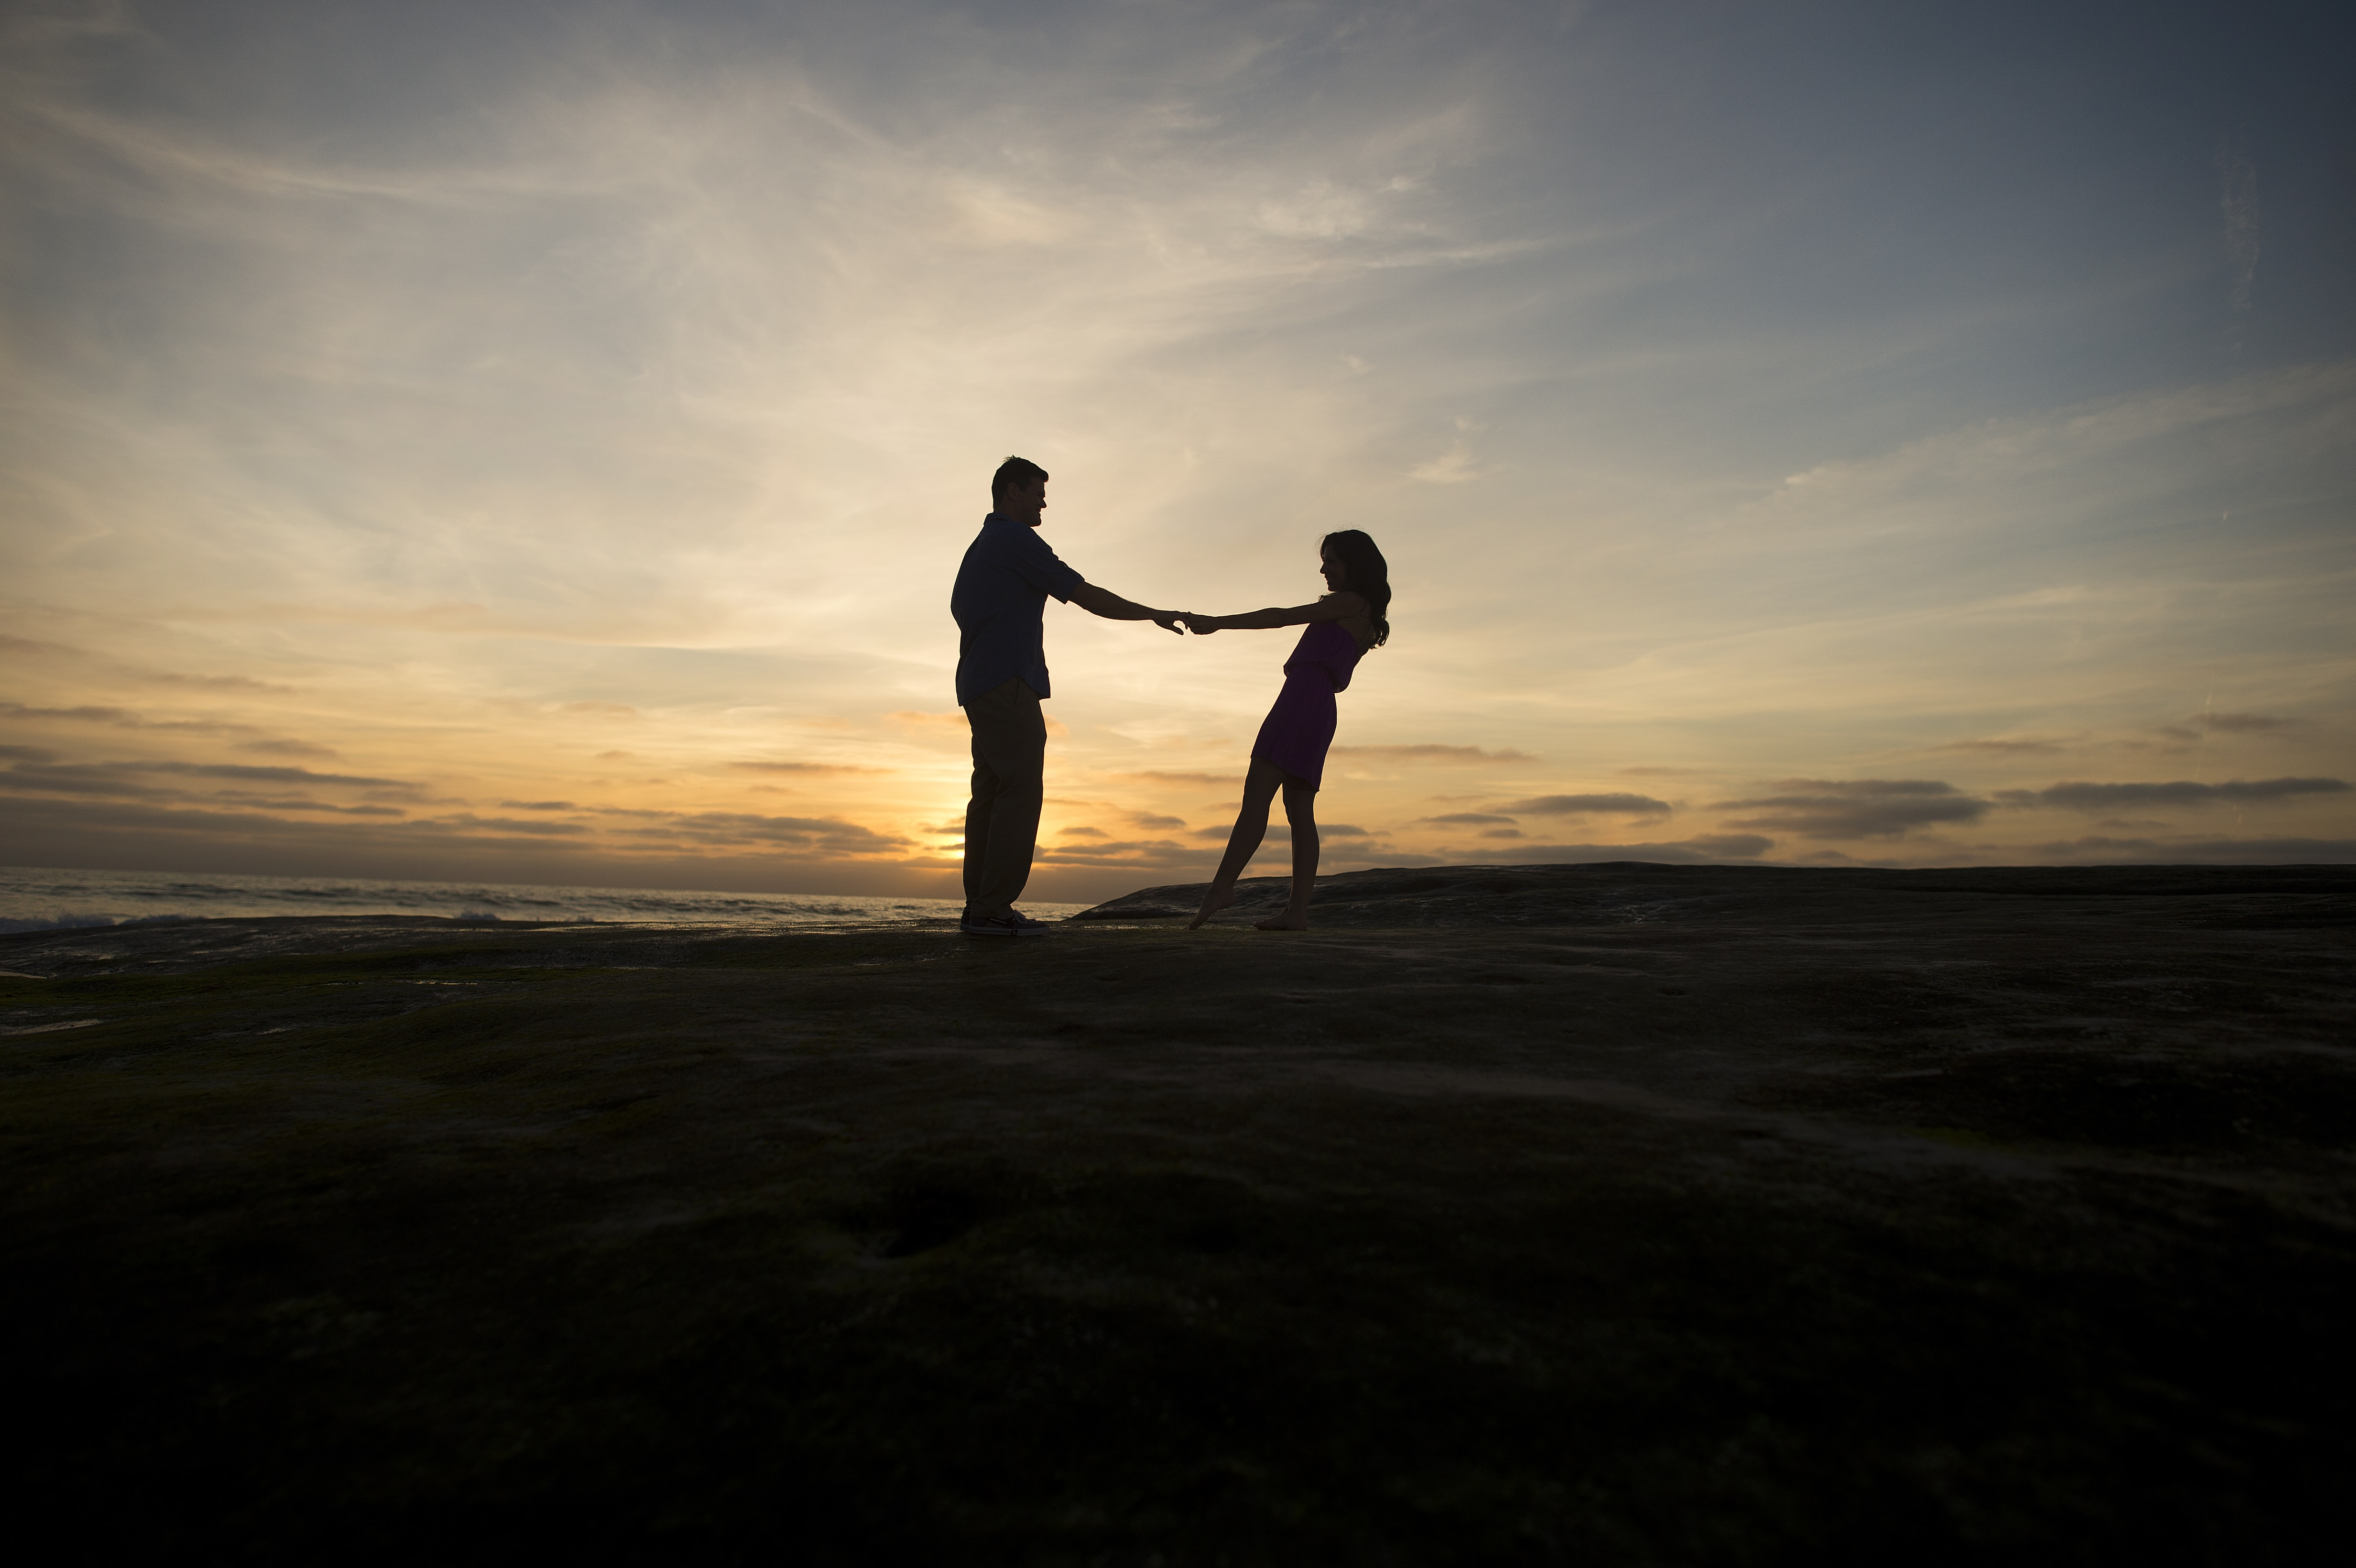 Couple spins round holding hands, silhouetted against setting the sun